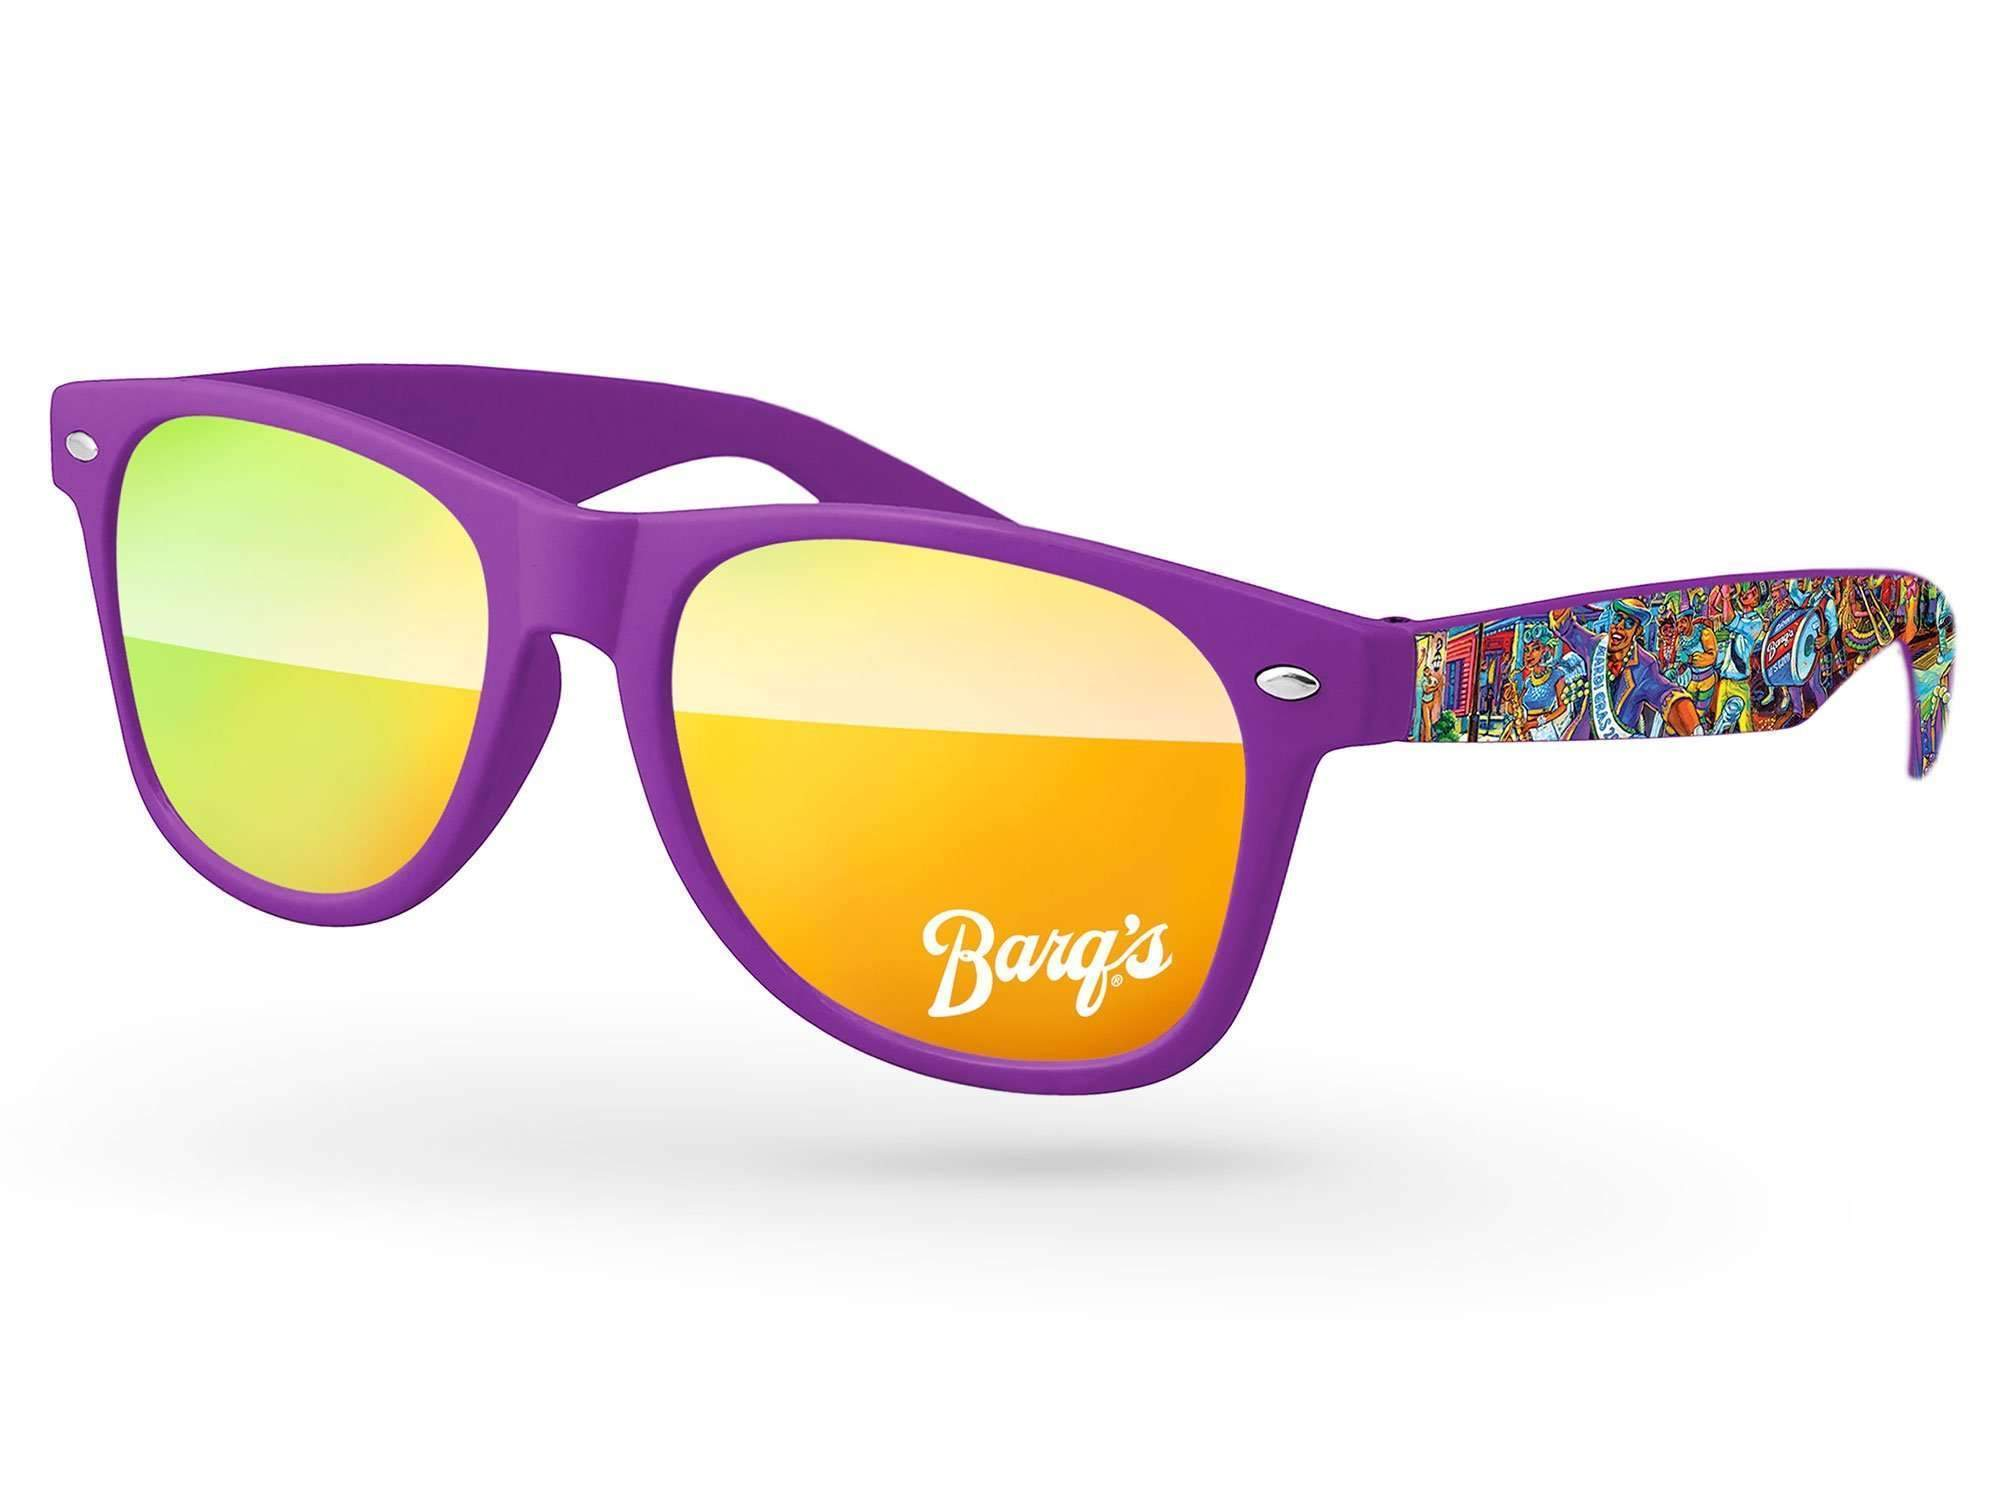 Retro Mirror Promotional Sunglasses w/ 1-color lens imprint & full-color arms heat transfer